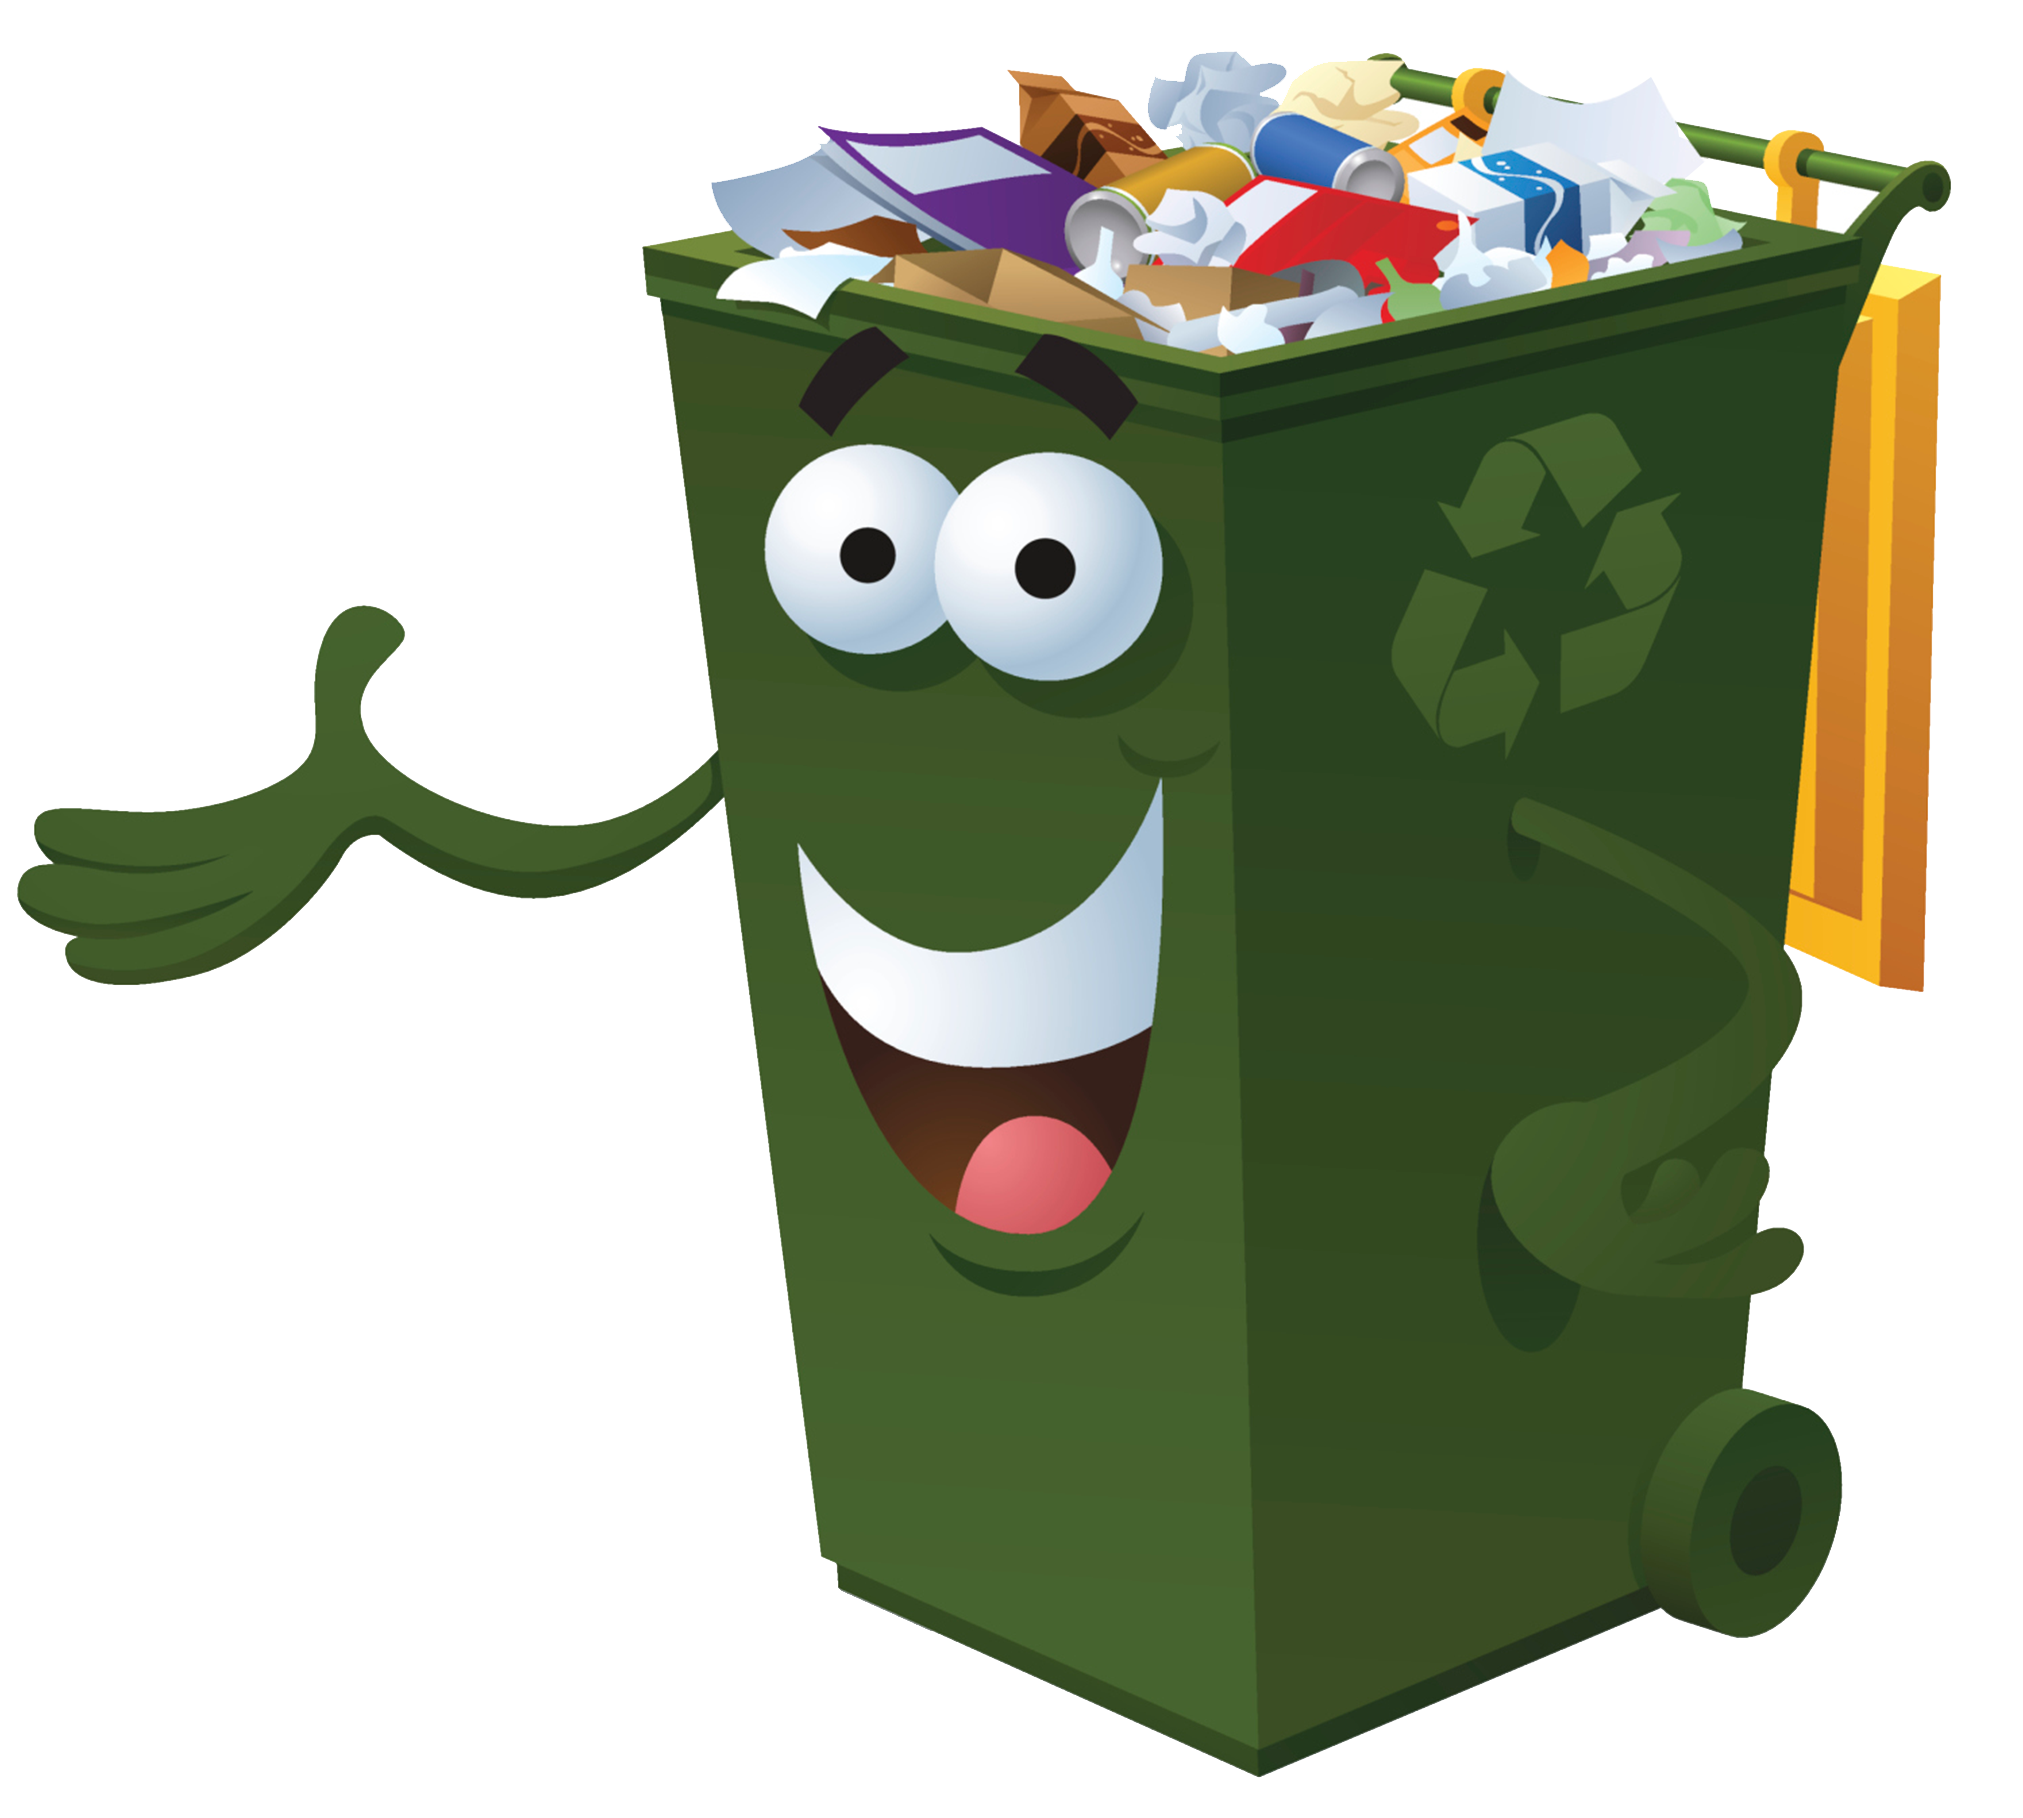 svg free download Trashcan clipart waste product. Container recycling bin paper